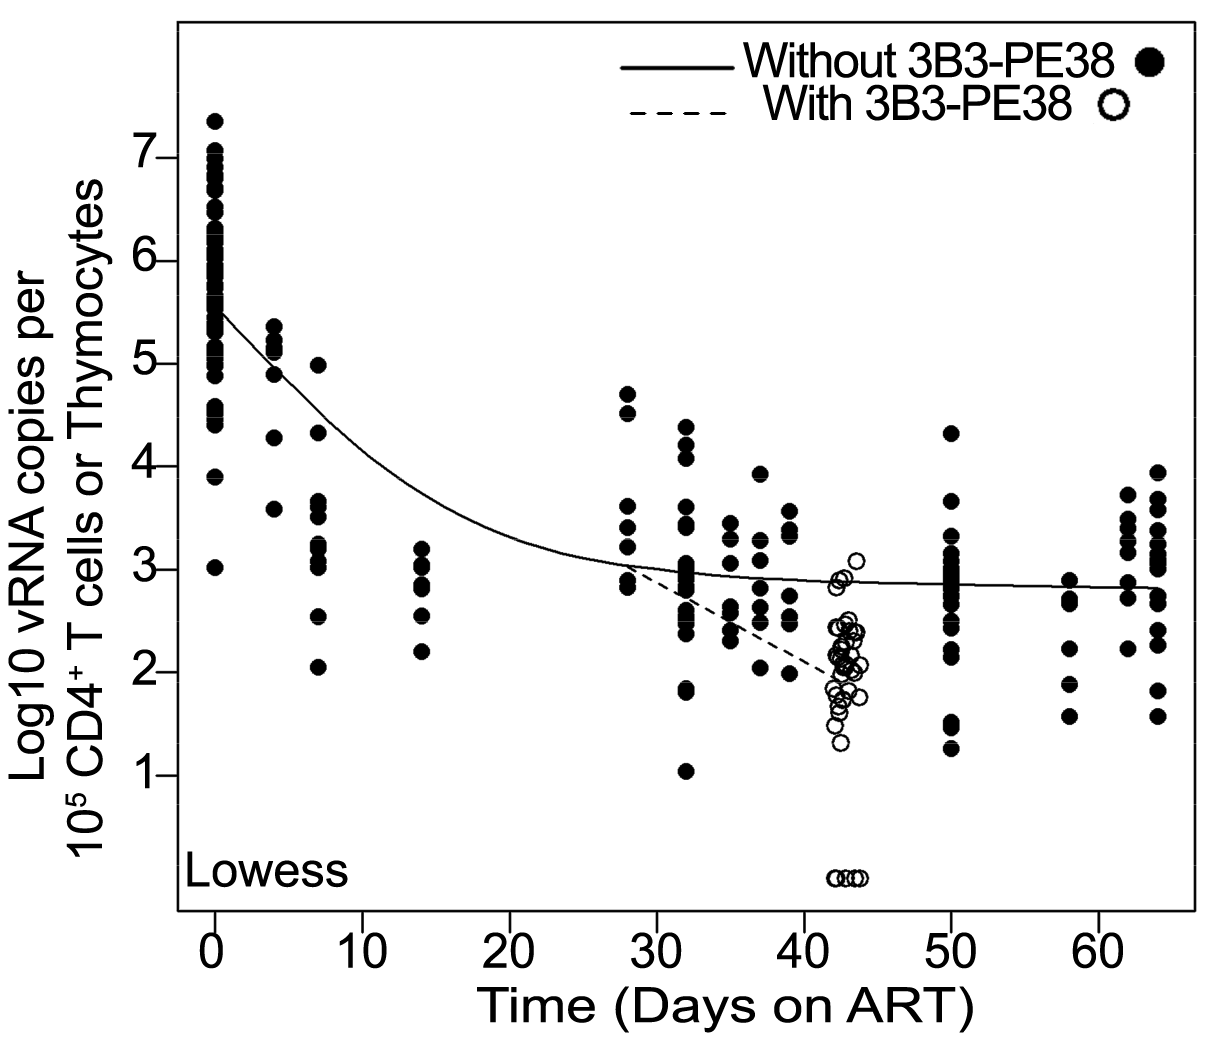 The 3B3-PE38 mediated killing of vRNA producing cells leads to a more rapid reduction in vRNA levels versus ART only.